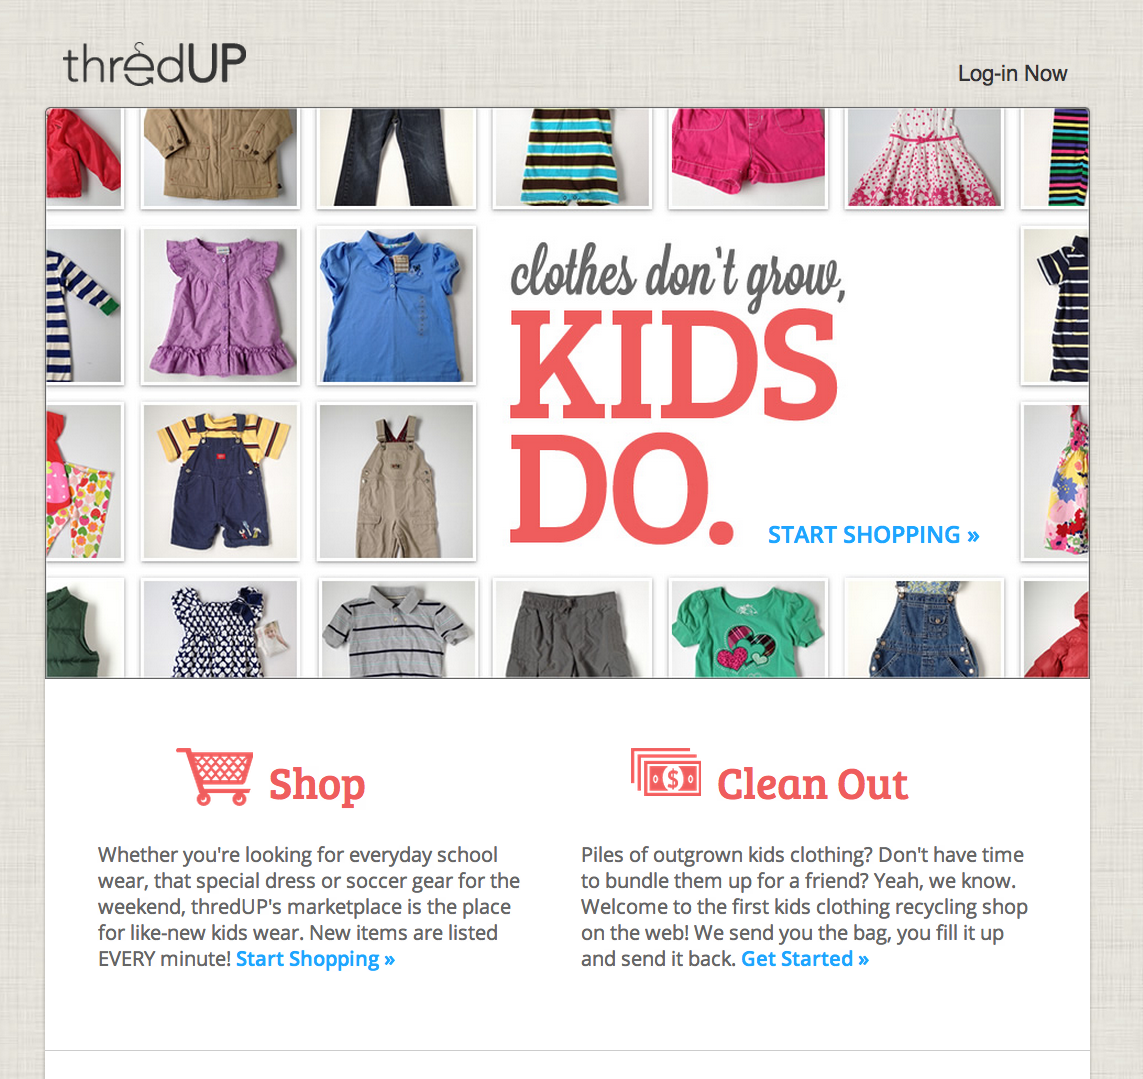 b37cb1789dec ThredUP Shuts Down Kids Clothes Swapping Service In Favor Of Online  Consignment – TechCrunch